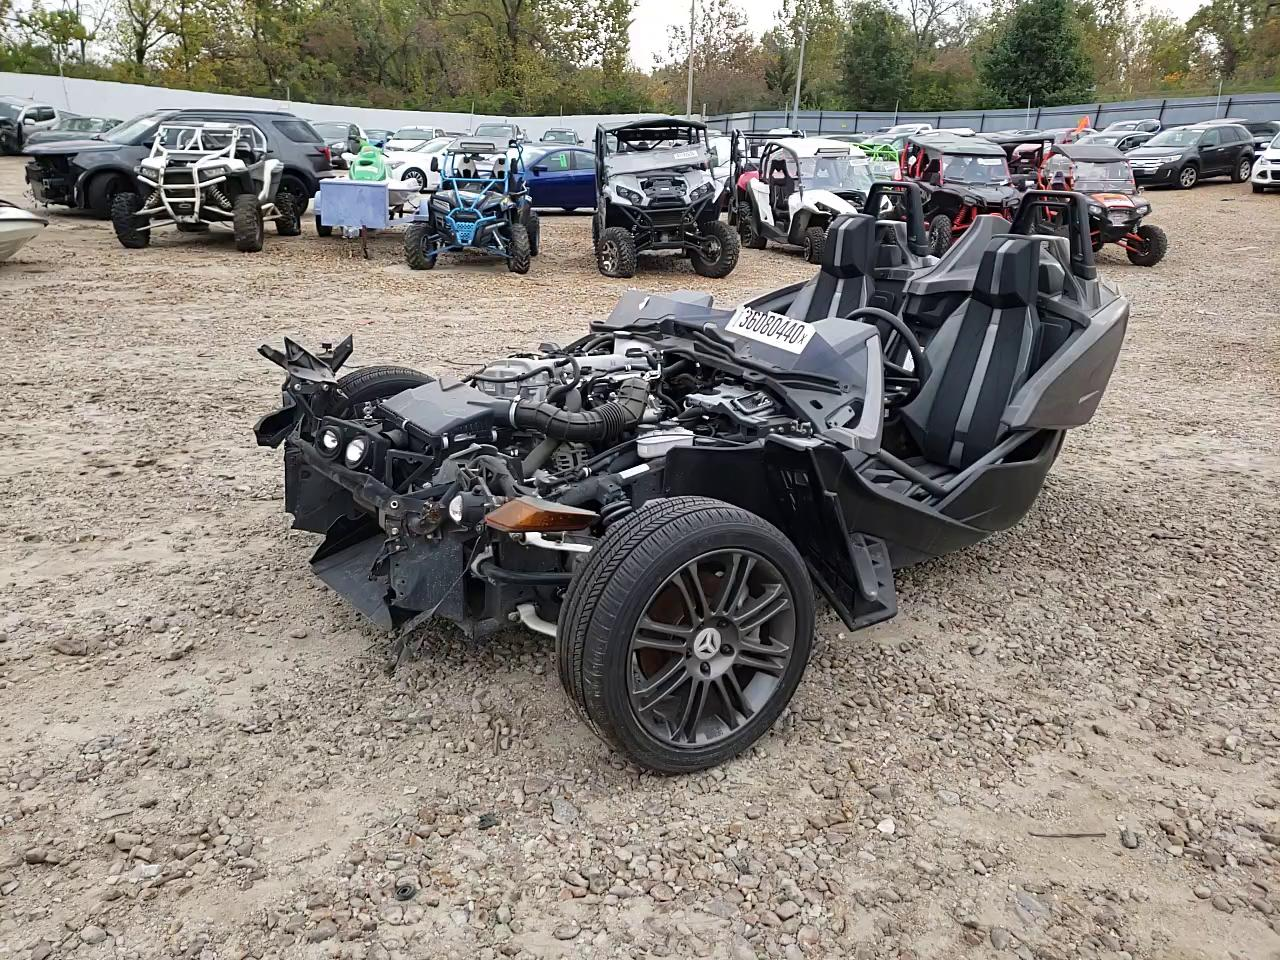 2016 POLARIS SLINGSHOT - Other View